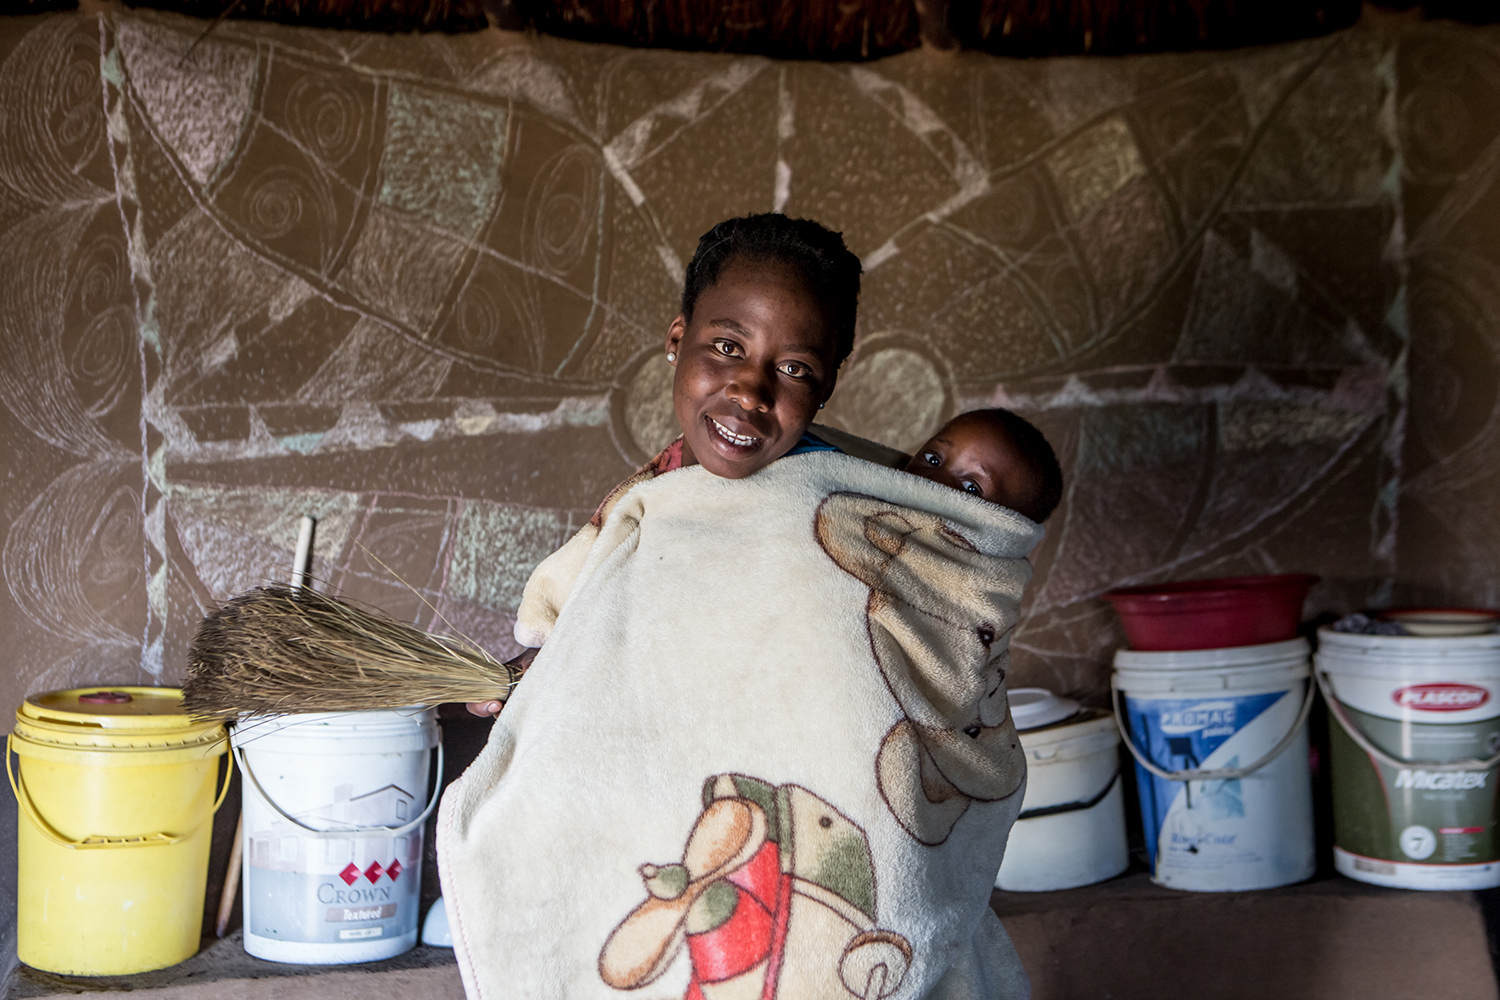 "Maitumeleng Leteketa (22 yrs) and her baby Tsele Leteketa (8 months) in their home in the Ha Khapiso Village in Lesotho, where Community - Led Total Sanitation (CLTS) has been embraced and implemented by the village. New latrines, and hand washing ""tippy"